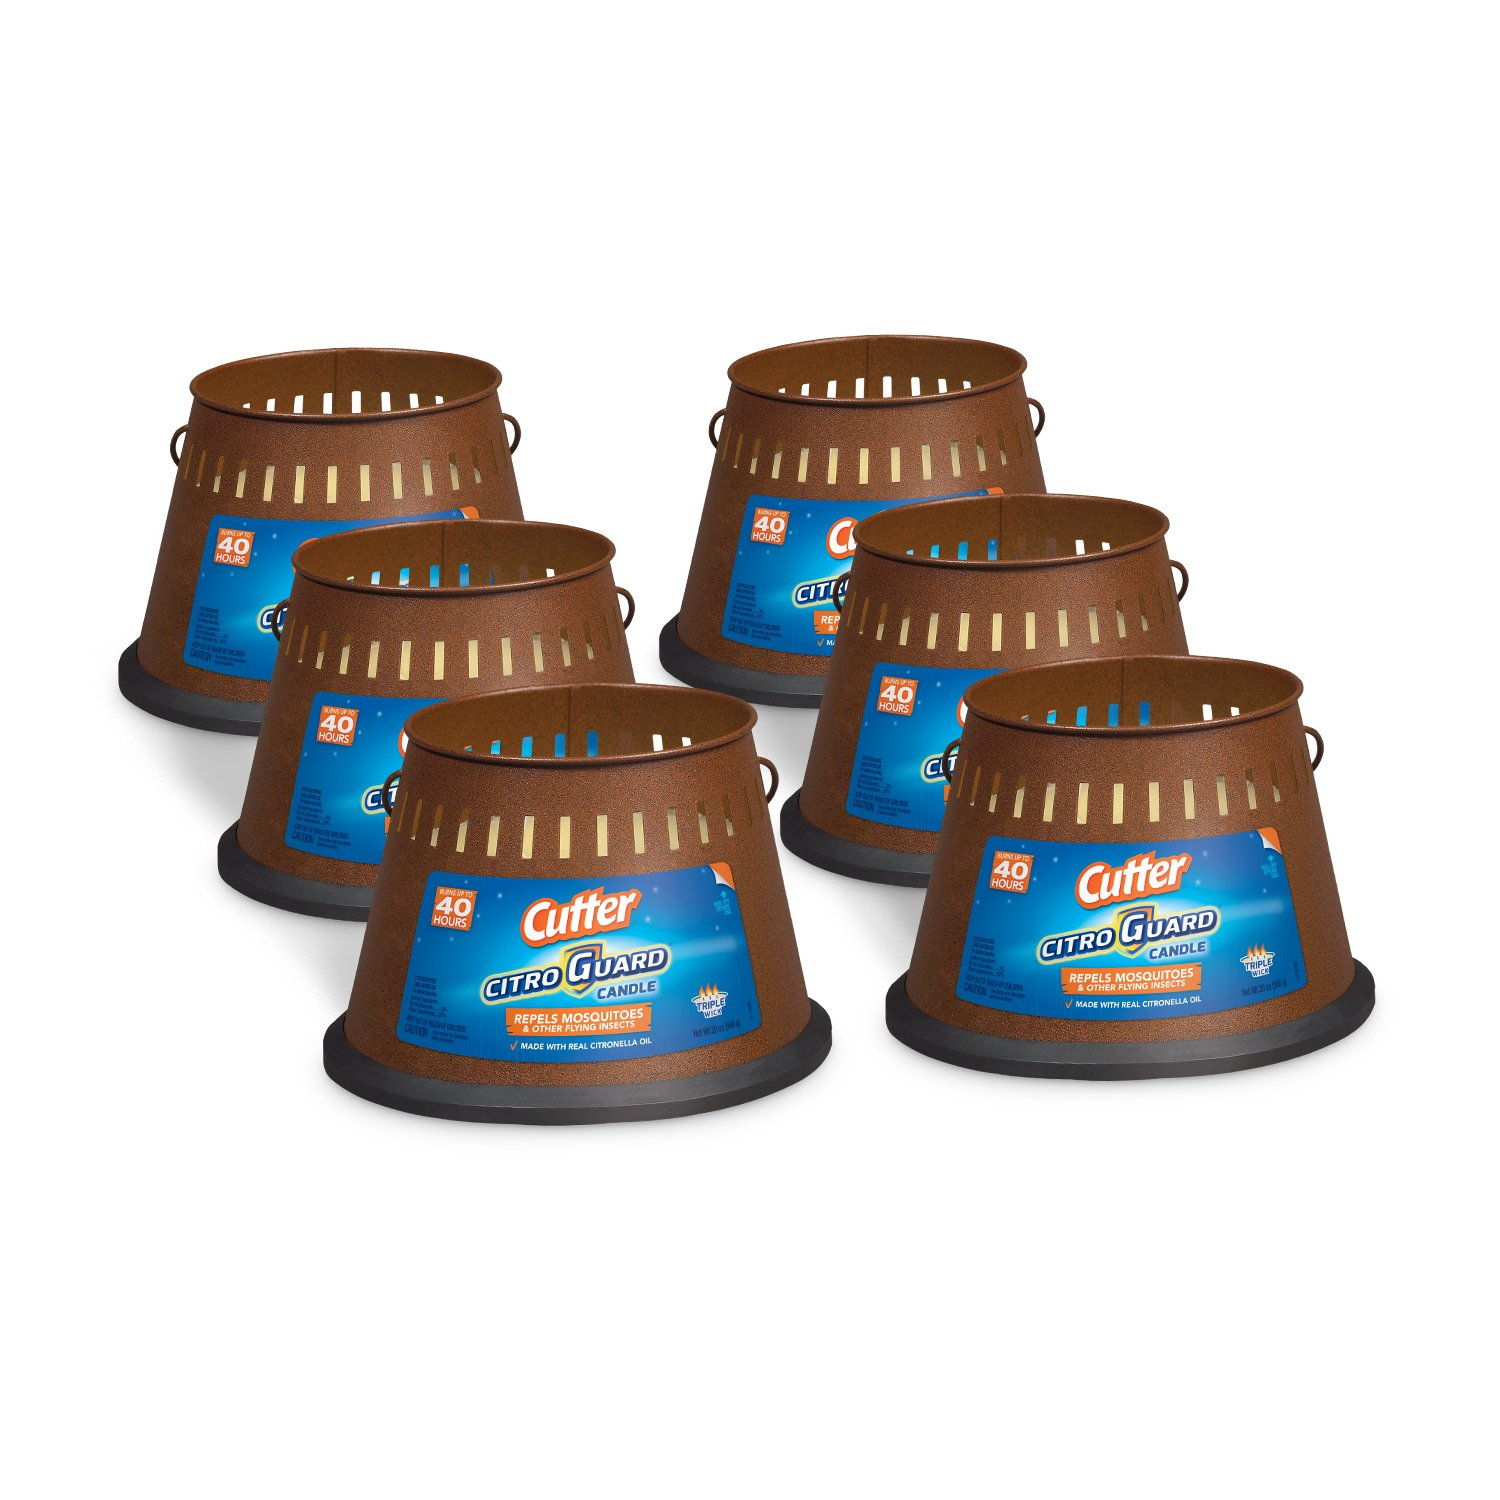 Cutter Citro Guard Candle (Triple Wick) (HG-95784) (Pack of 6) by Cutter (Image #1)